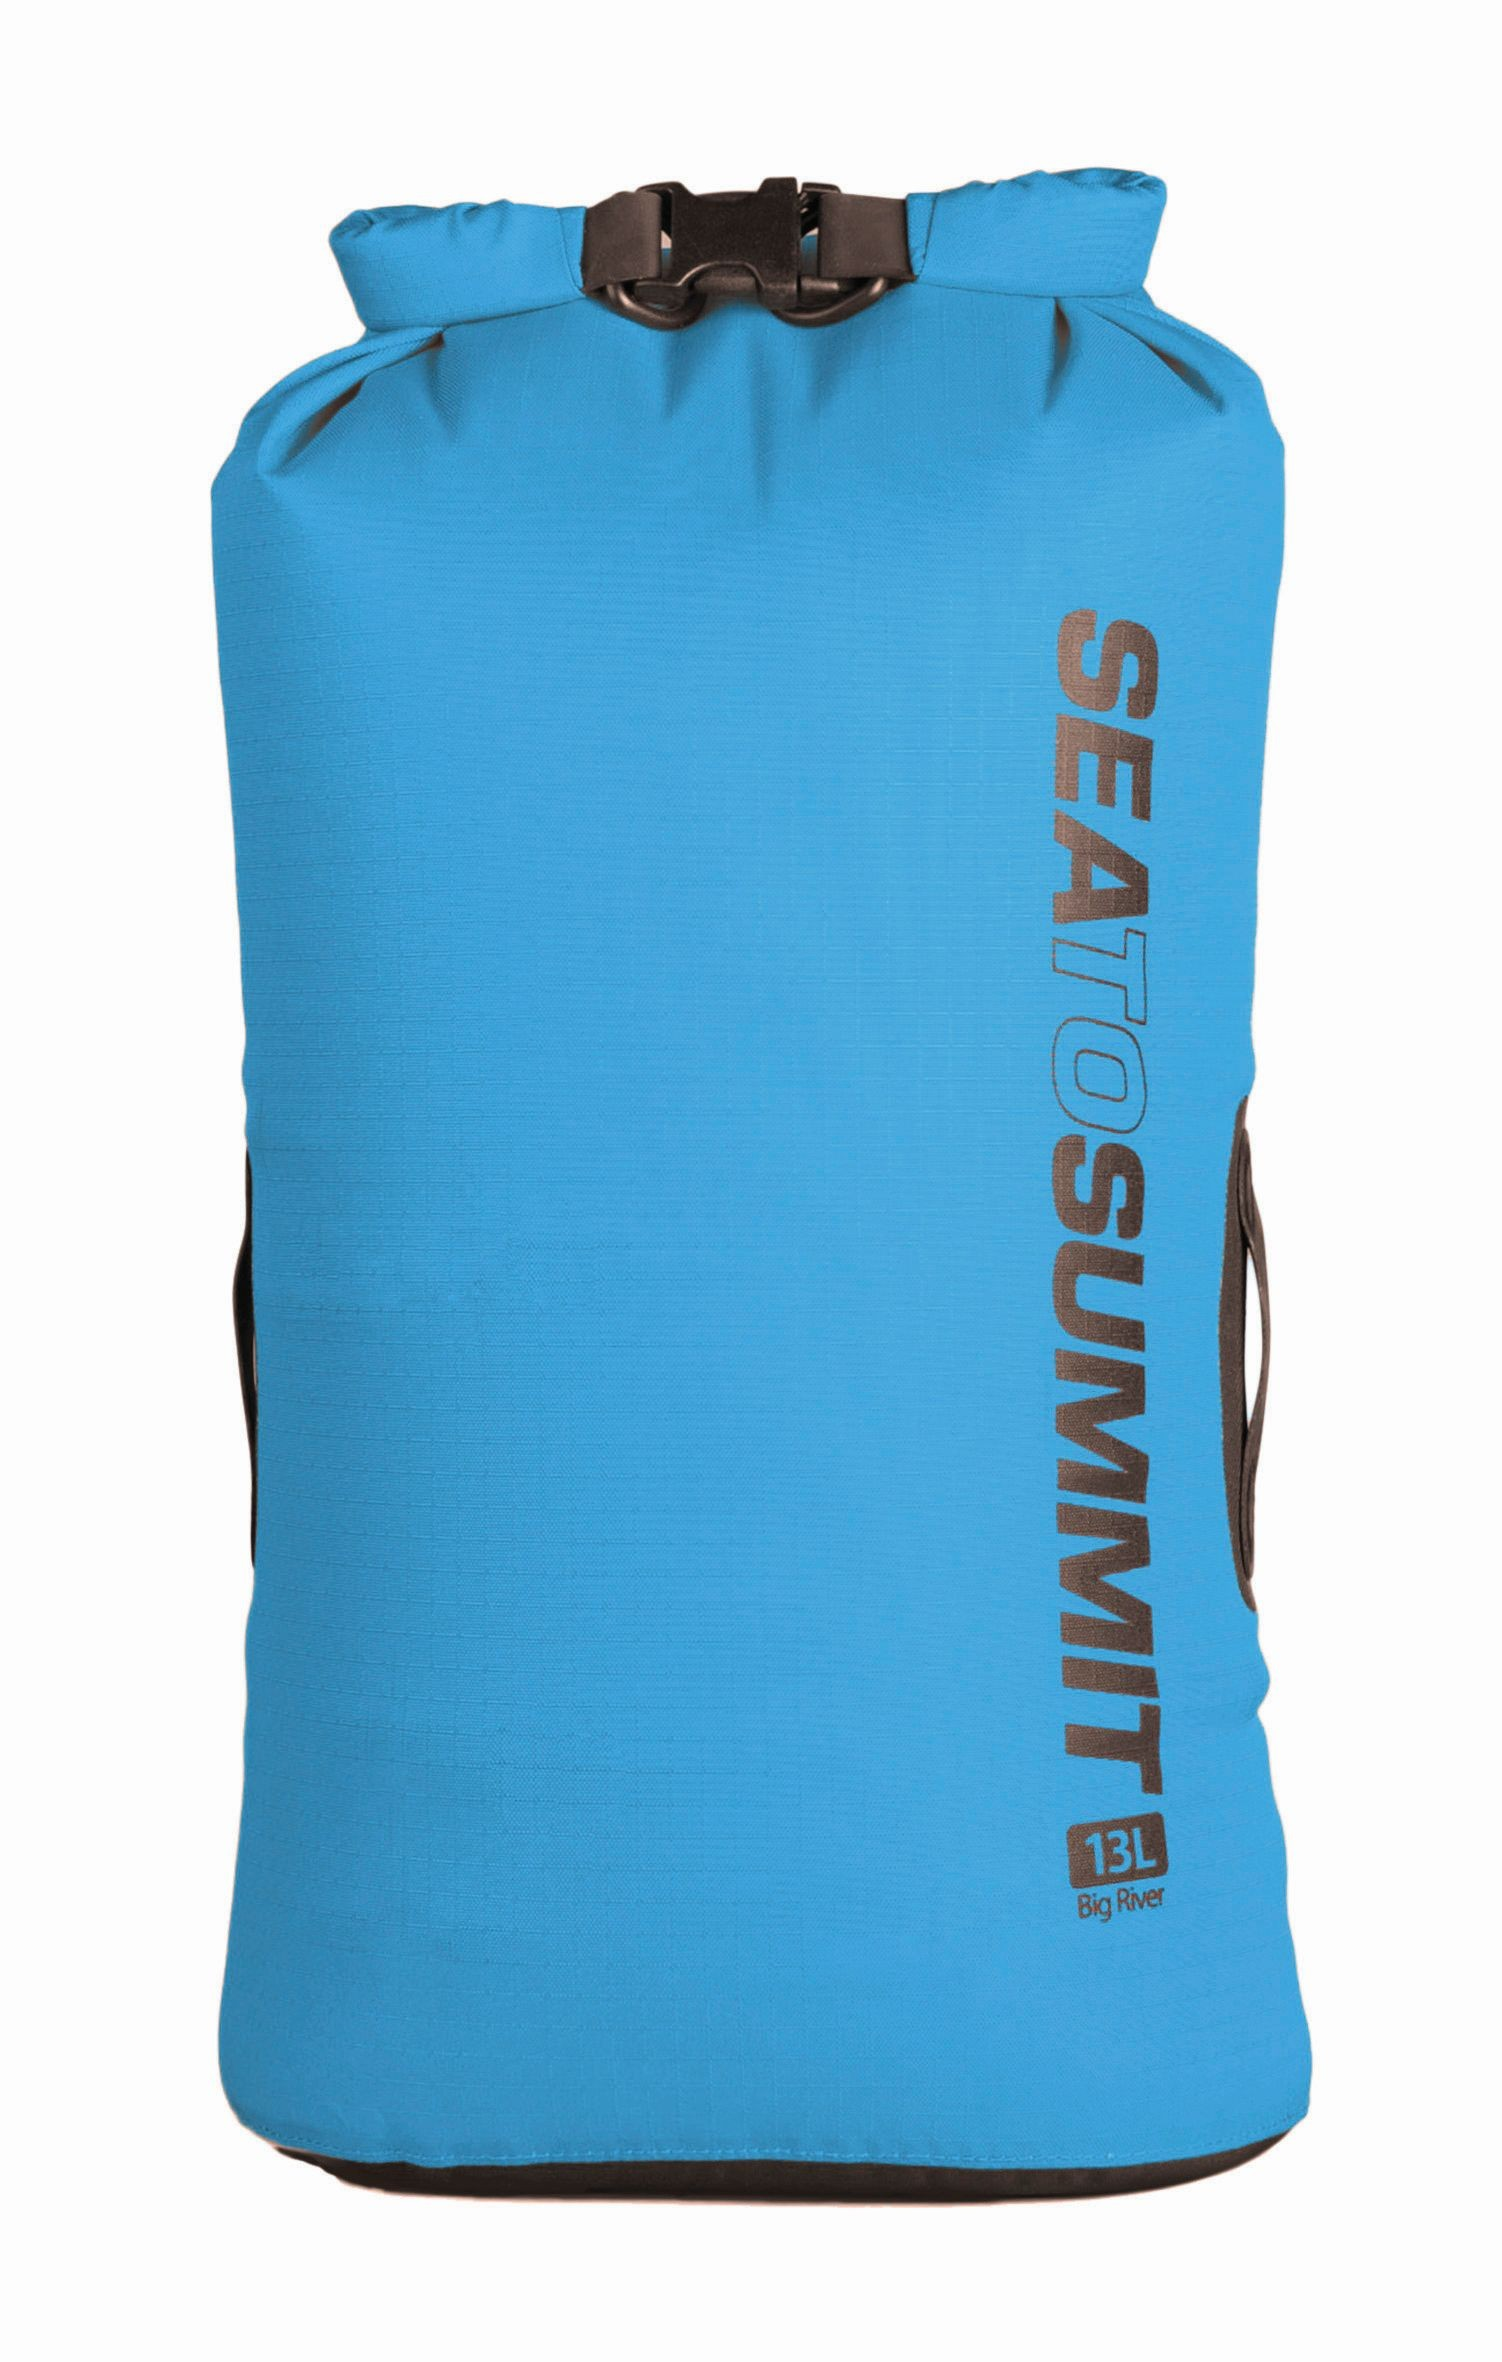 Sea To Summit Big River Dry Bag - 13 L